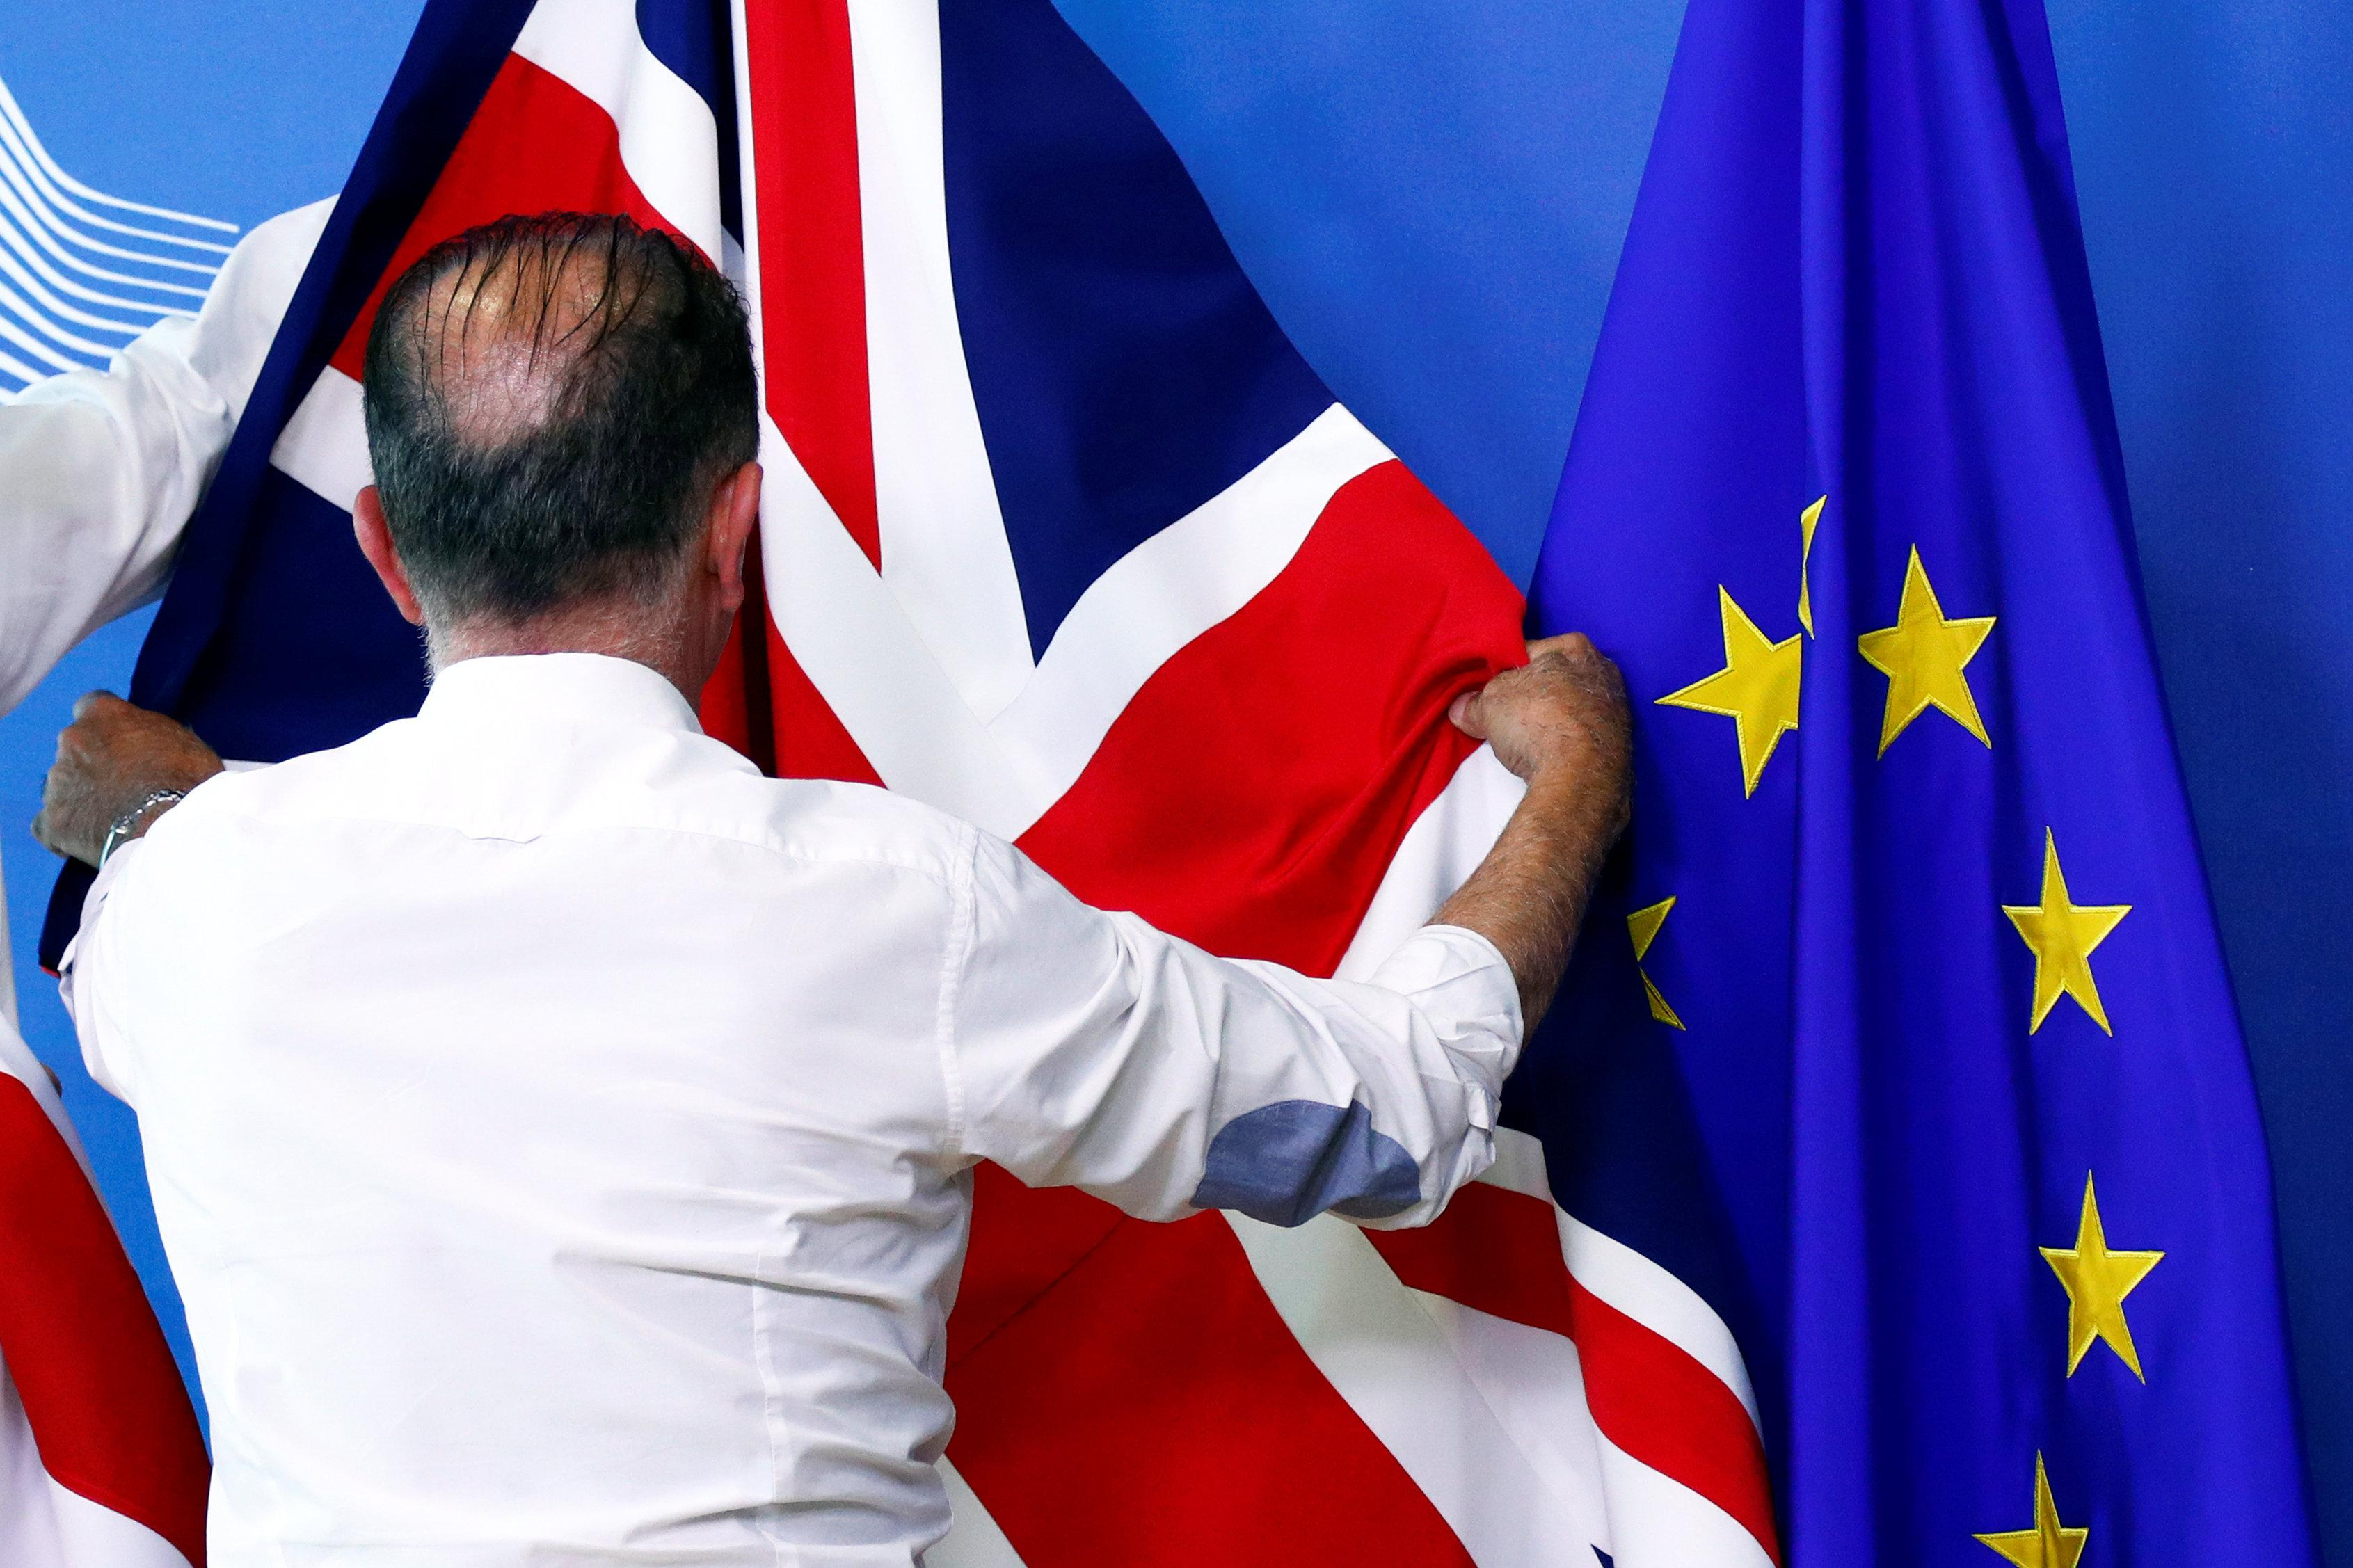 An official adjusts a Union Jack flag next to the European Union flag, ahead of a meeting between Britain's Secretary of State for Exiting the European Union, Dominic Raab, and European Union's chief Brexit negotiator, Michel Barnier, at the EU Commission headquarters in Brussels, Belgium July 19, 2018.   Francois Lenoir